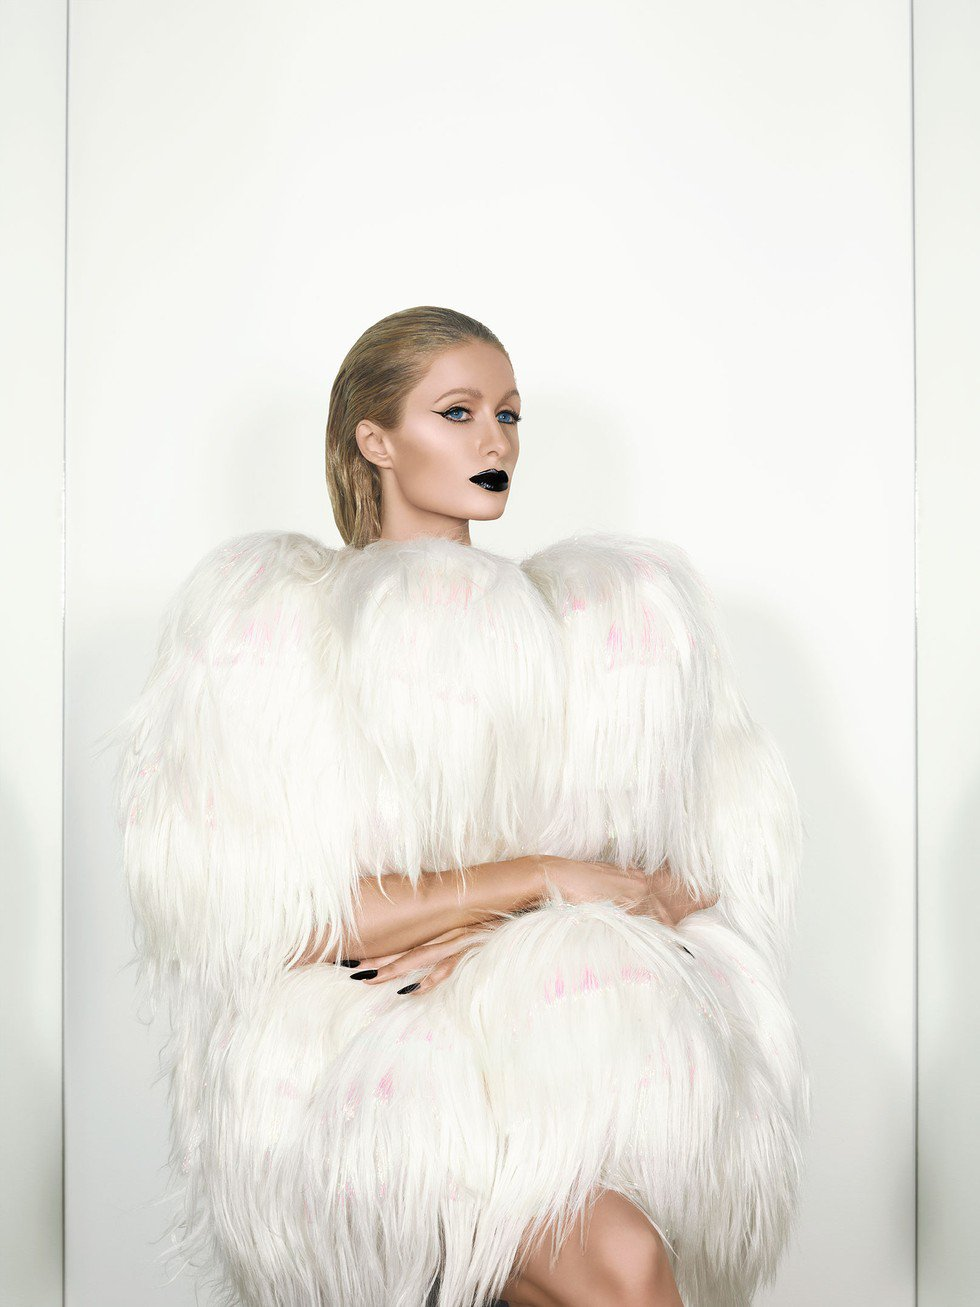 paris hilton for paper magazine 6